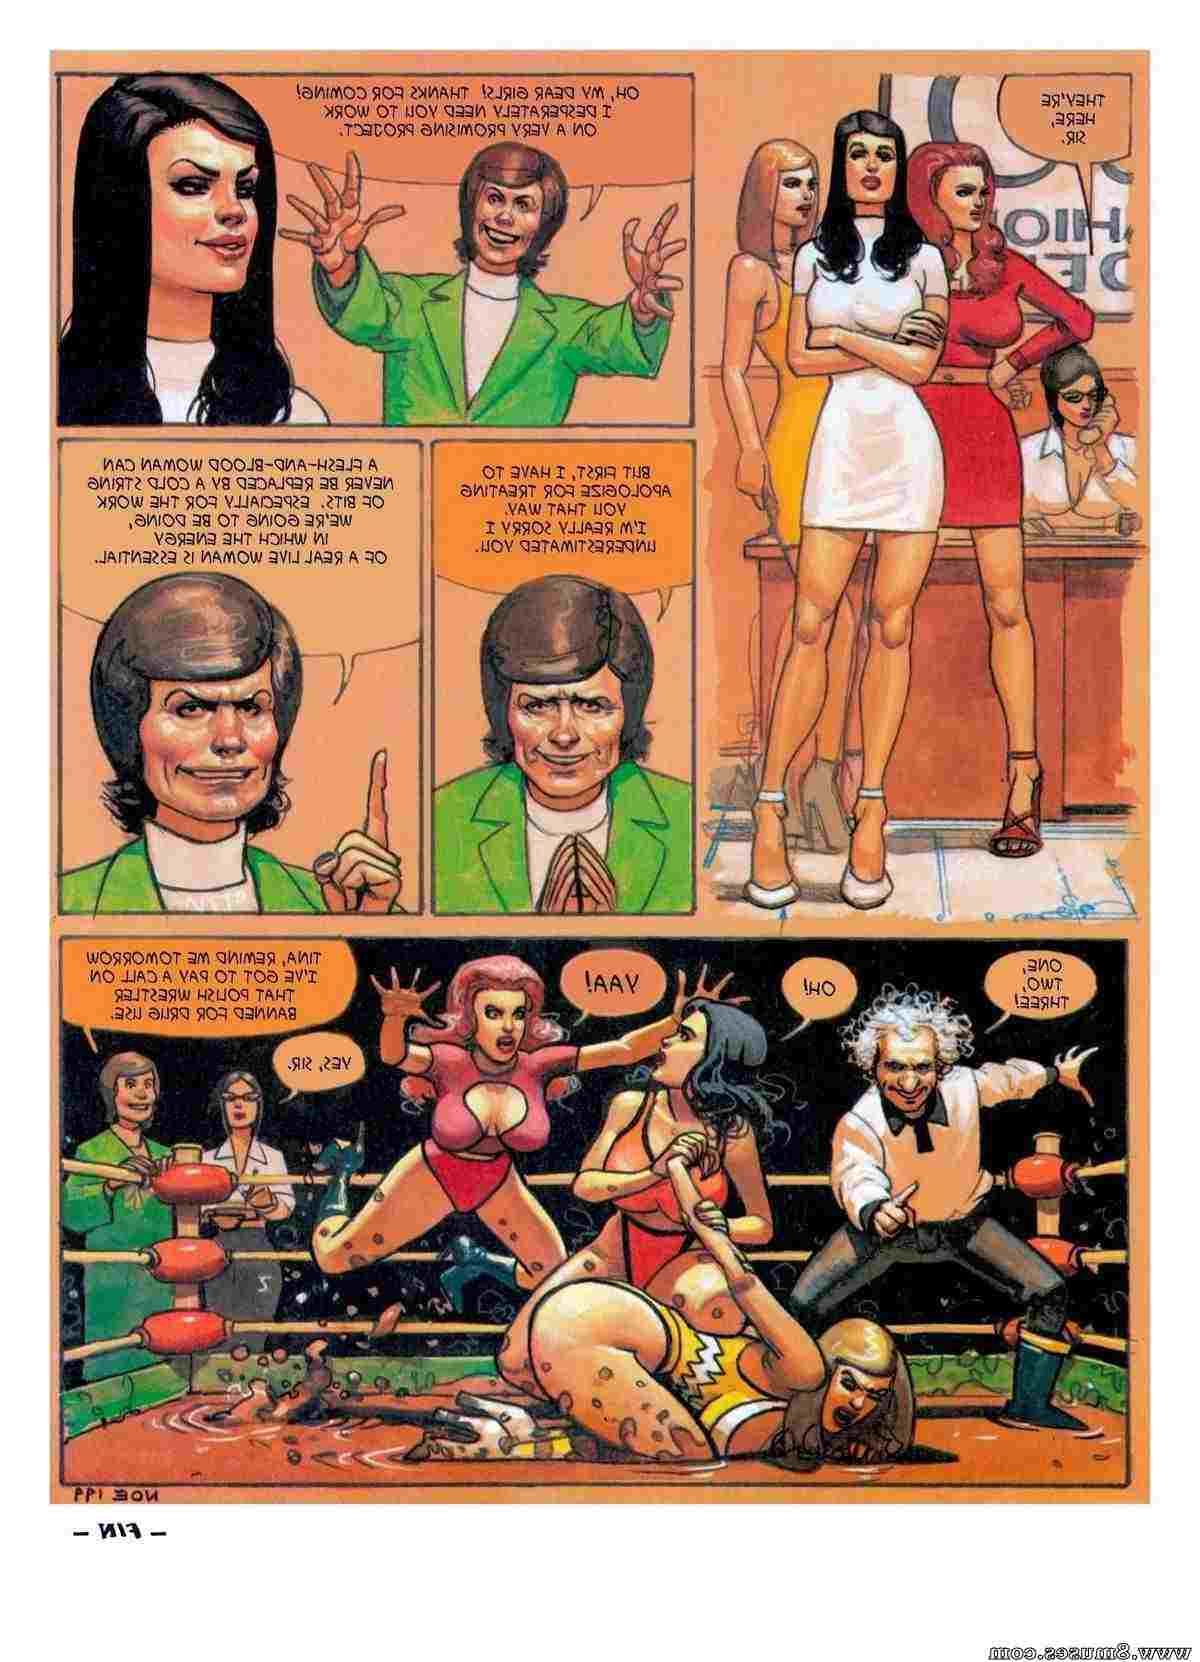 Ignacio-Noe-Comics/All-the-Right-Career-Moves All_the_Right_Career_Moves__8muses_-_Sex_and_Porn_Comics_16.jpg